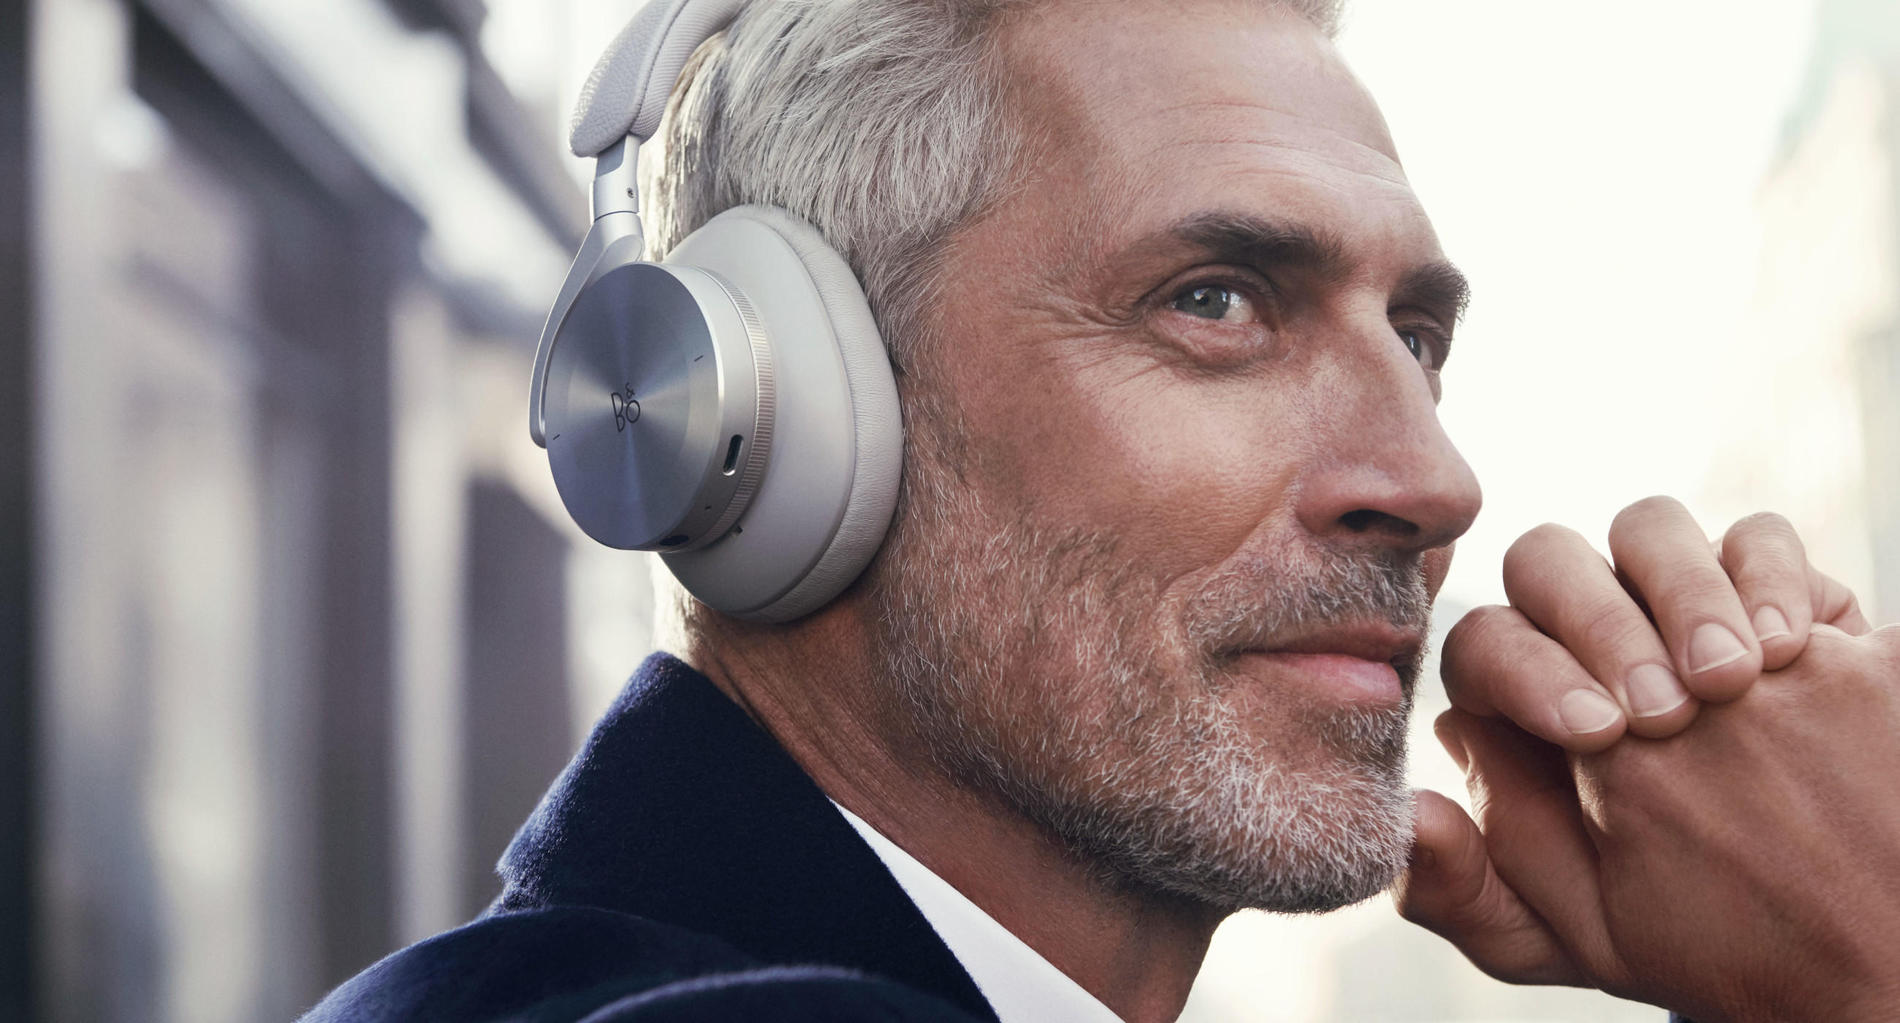 Beoplay H95 Adaptive ANC headphones